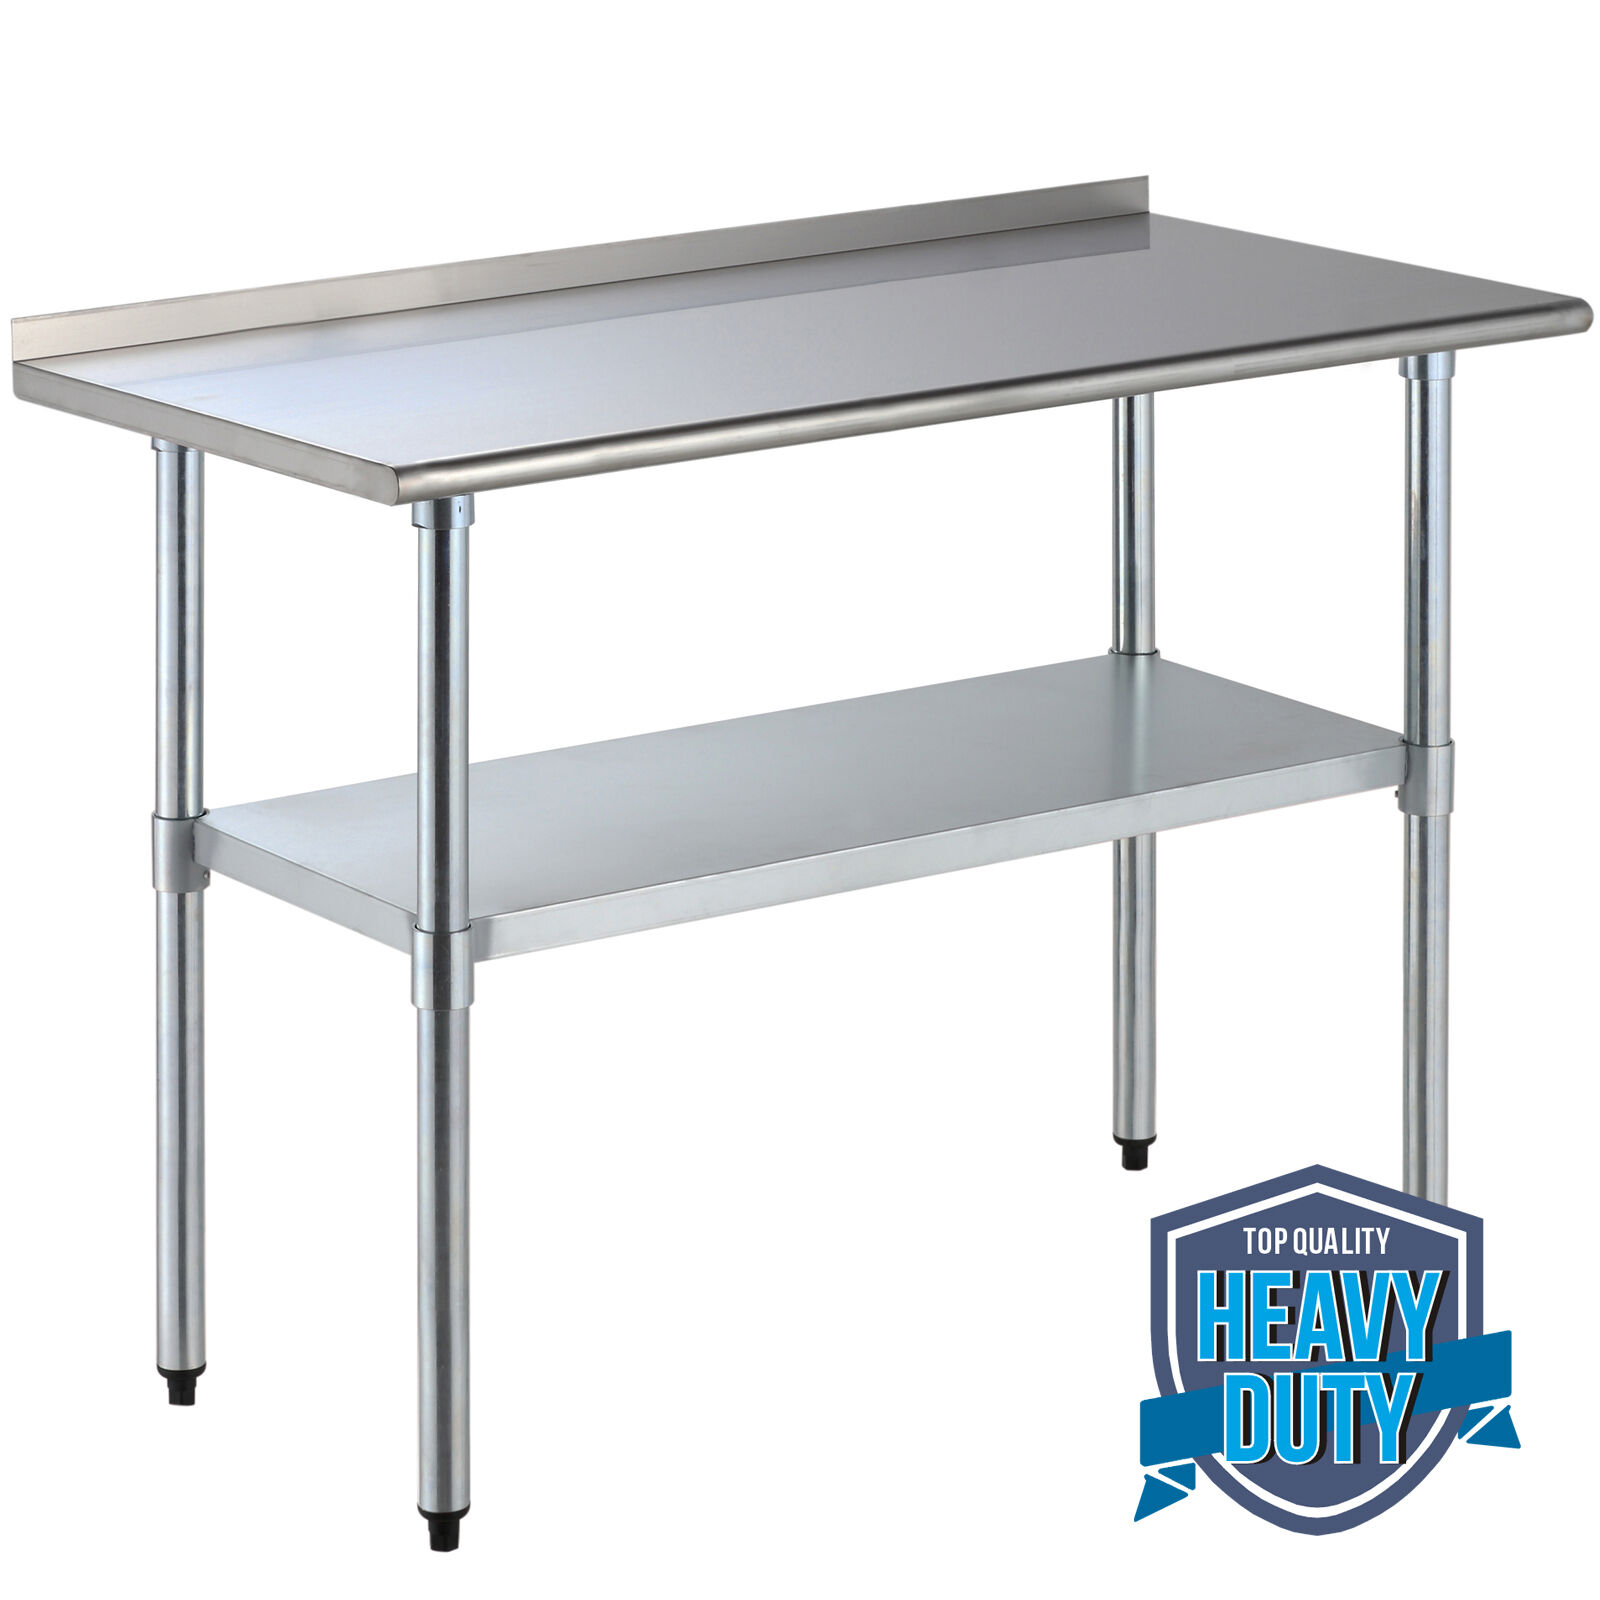 X Stainless Steel Work Prep Table With Backsplash Kitchen - Stainless steel prep table with shelves